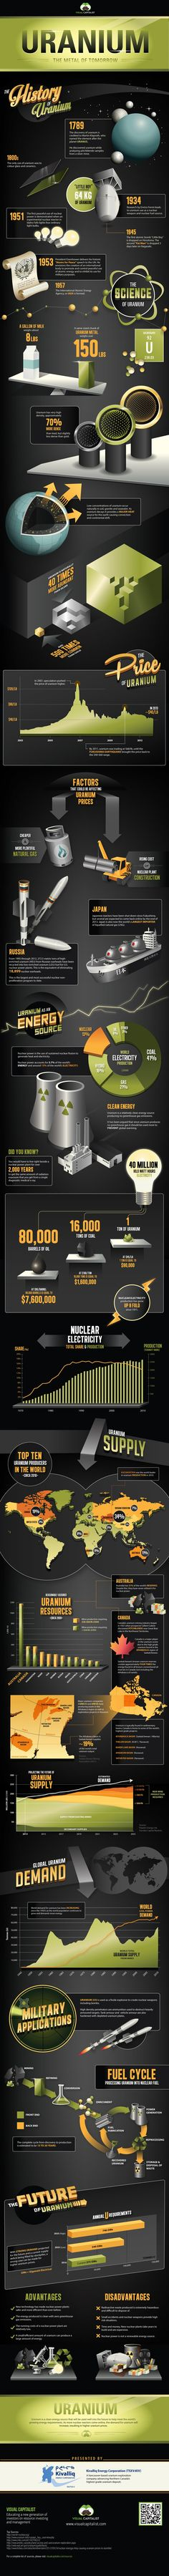 Uranium, the Metal of Tomorrow